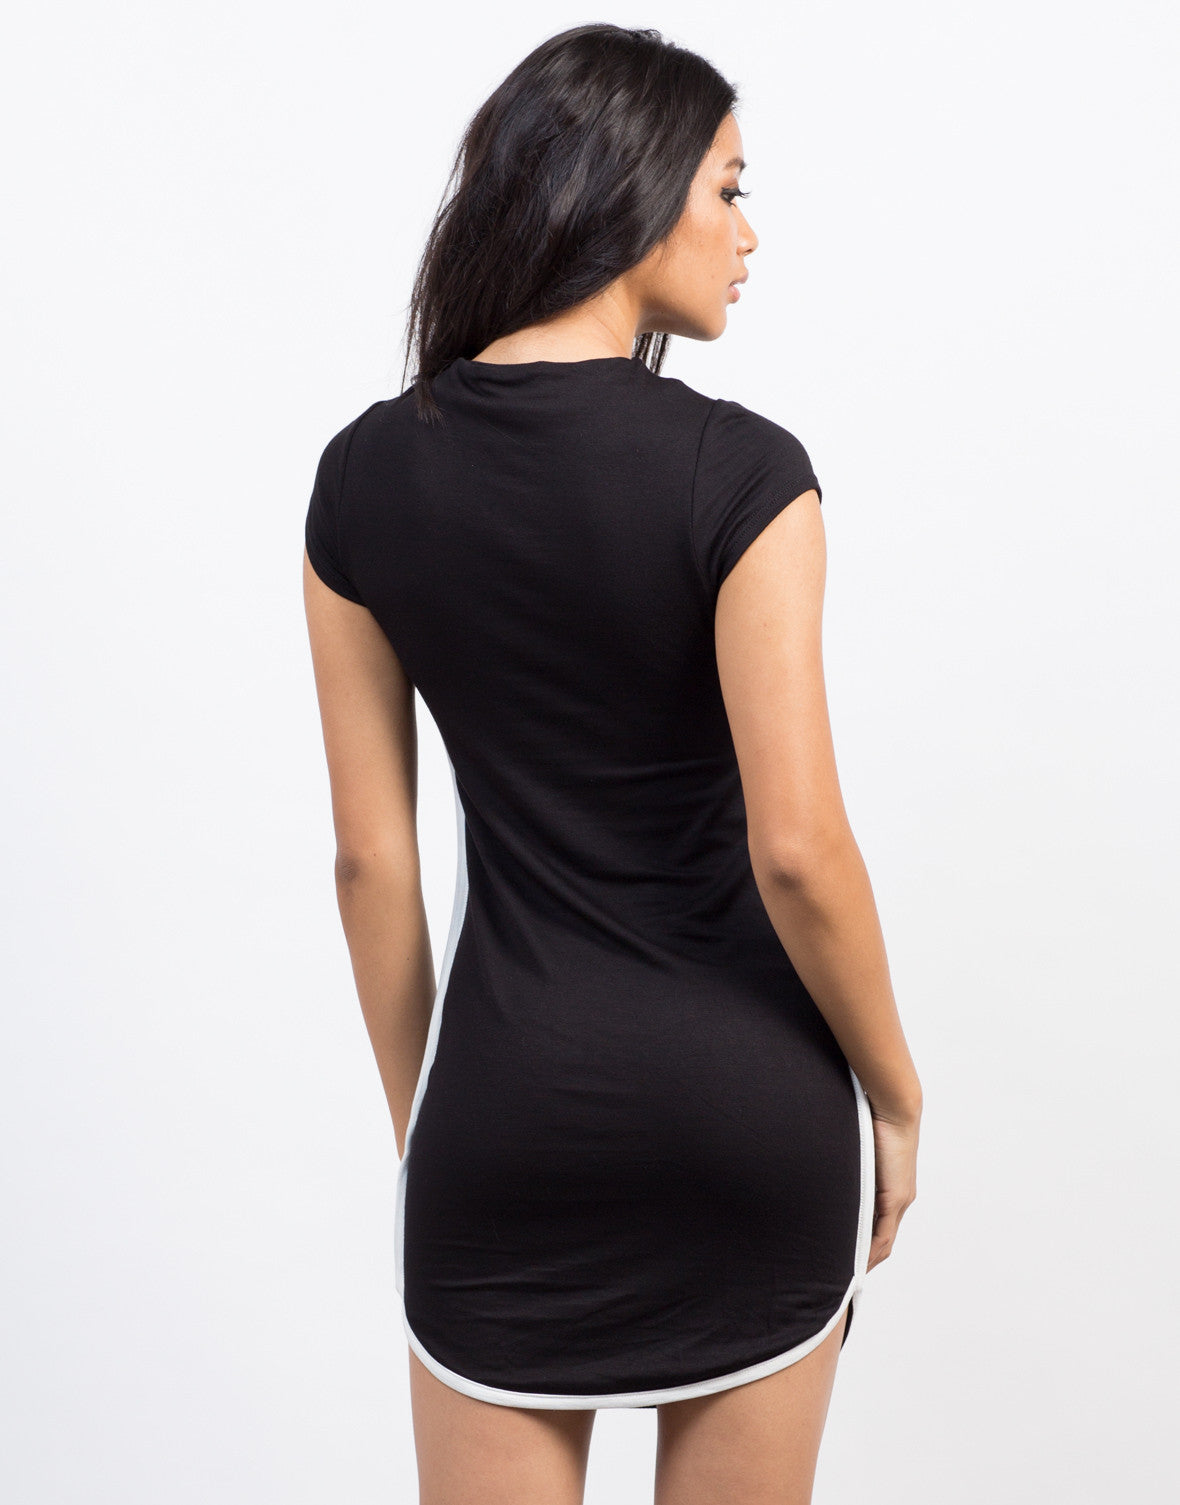 Back View of Sporty T-Shirt Dress